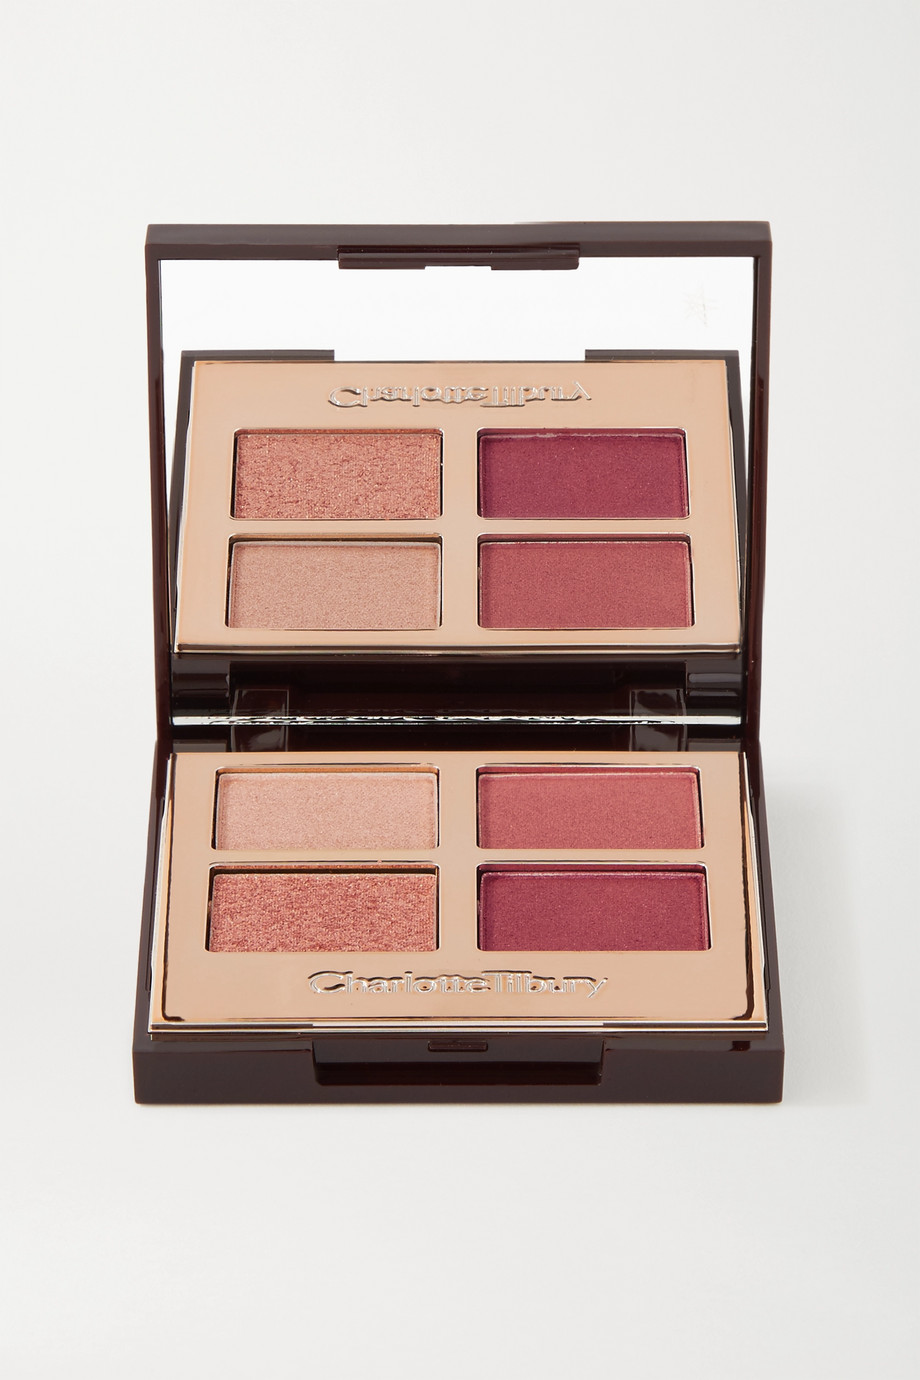 Charlotte Tilbury Luxury Palette Colour-Coded Eye Shadows - Walk Of No Shame